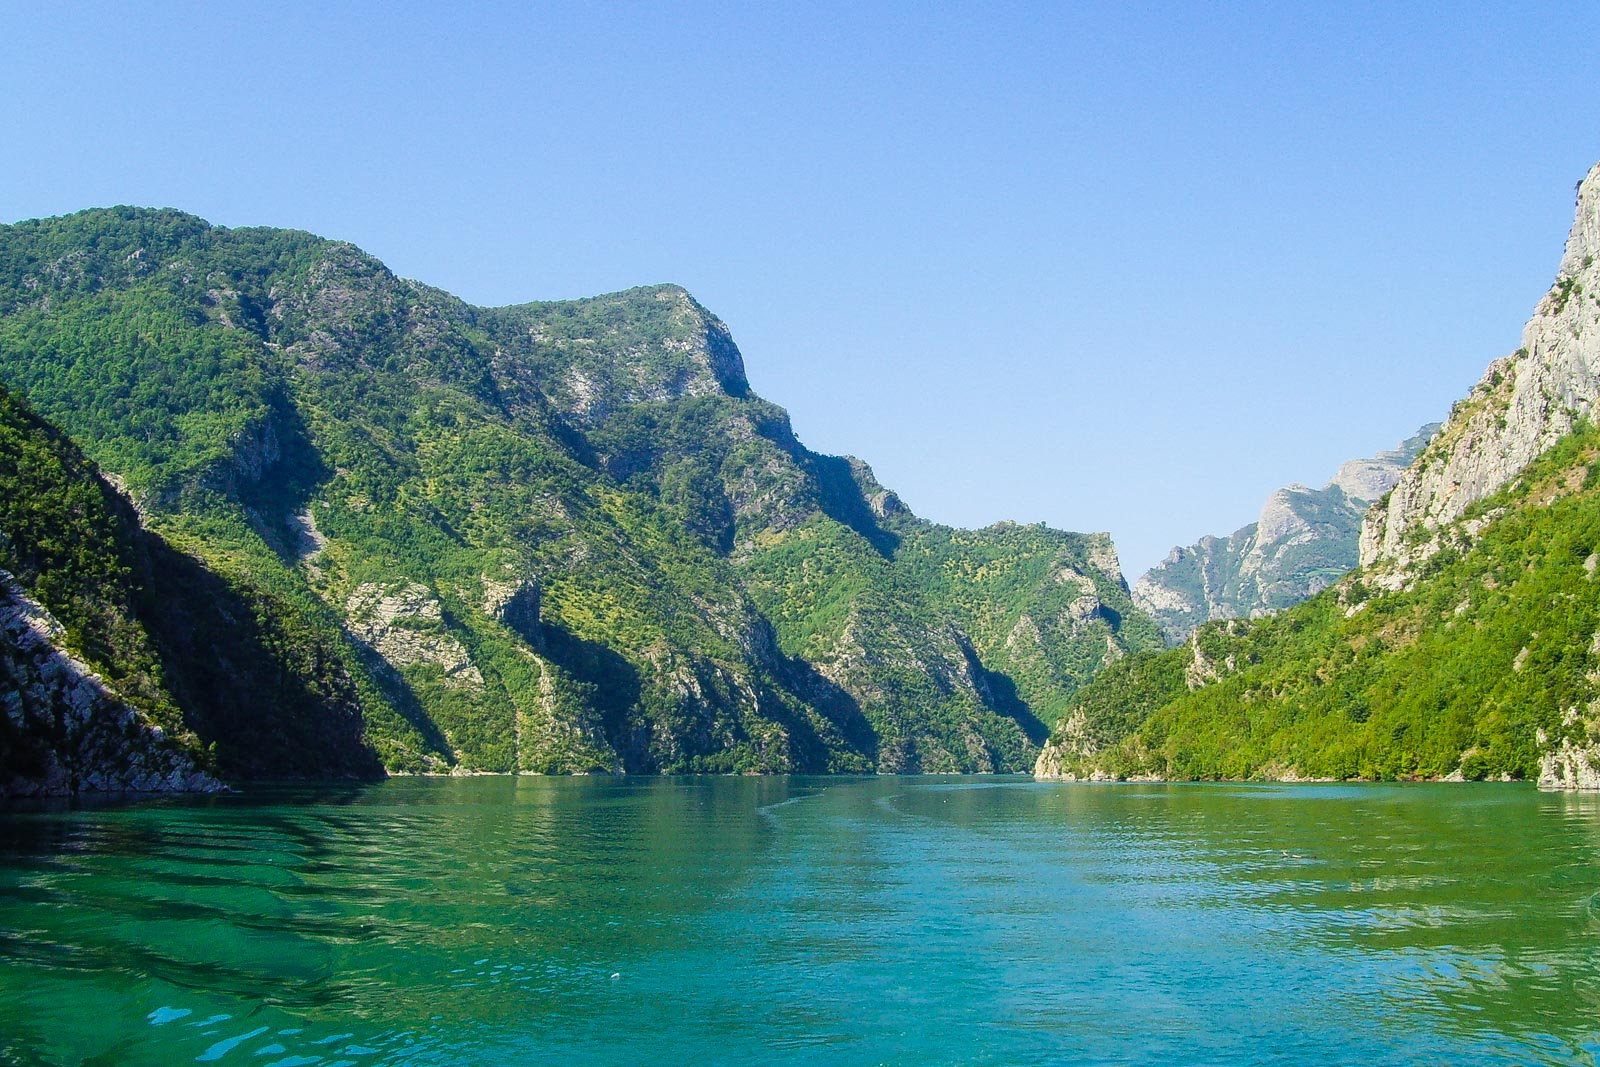 With the ferry you go through this river valley in the North of Albania.